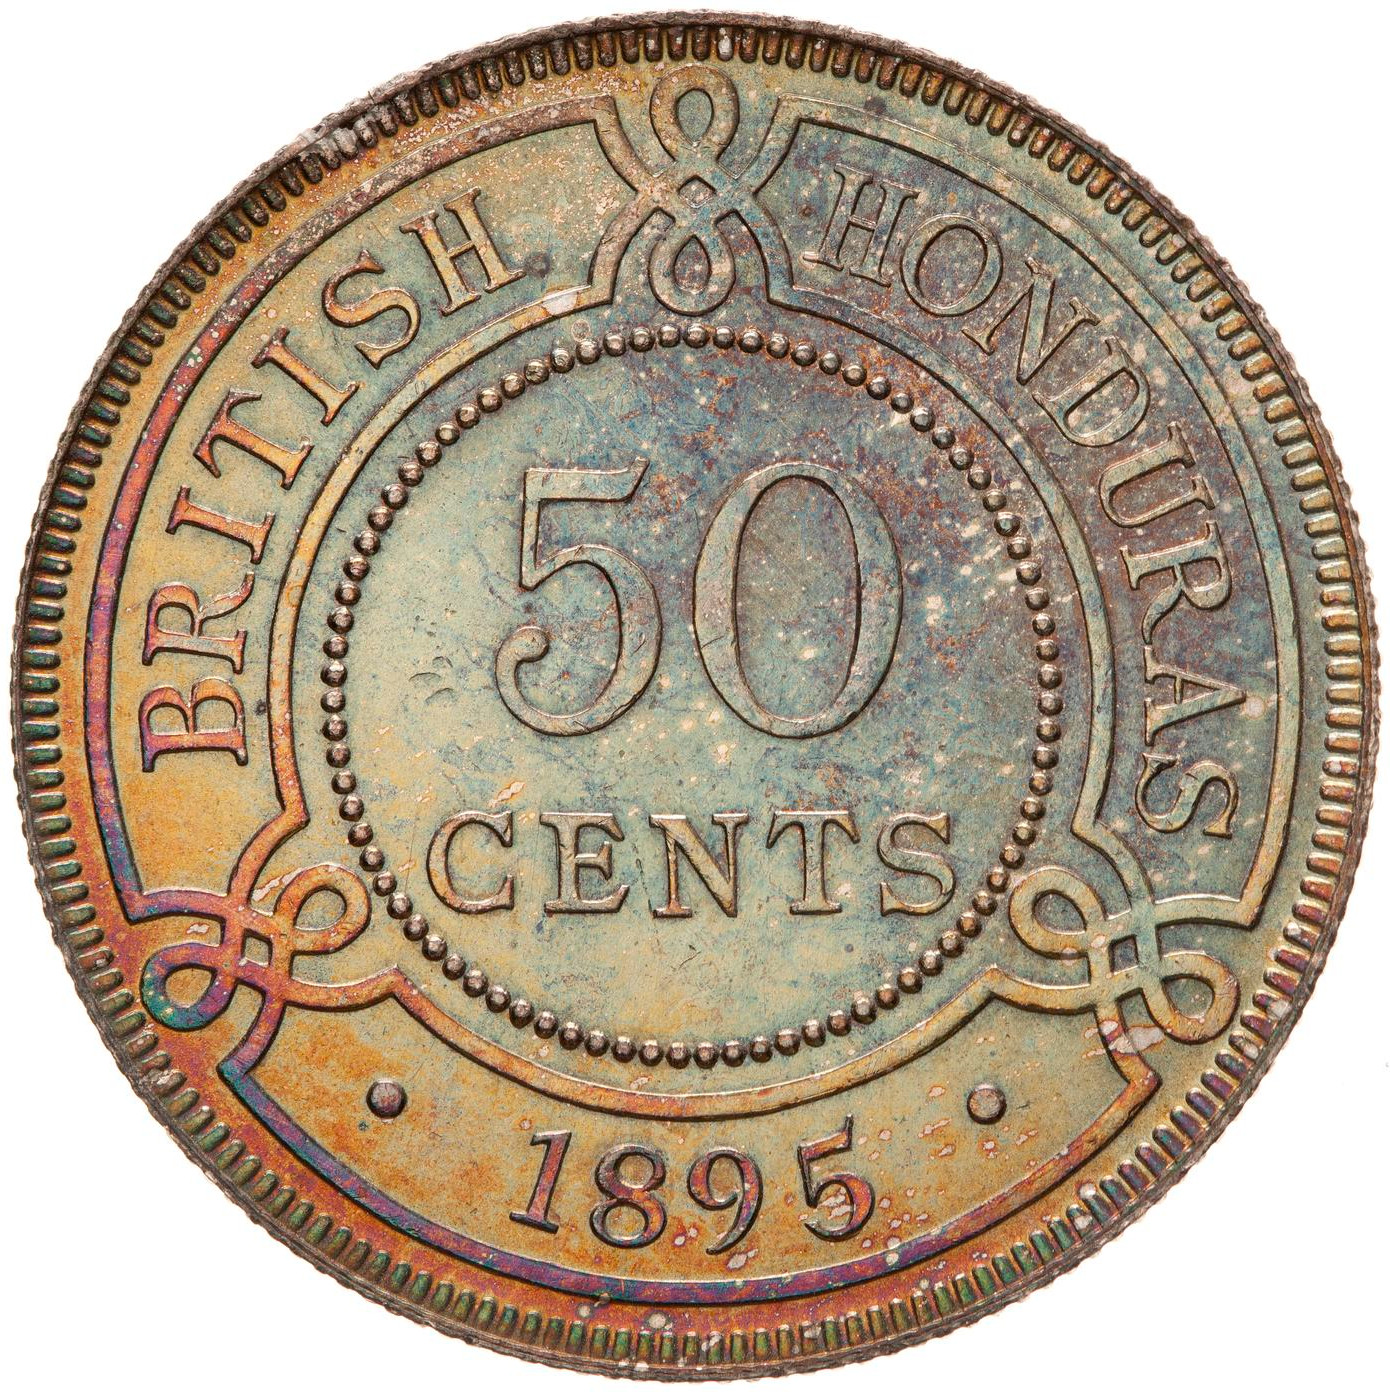 Fifty Cents 1895: Photo Coin - 50 Cents, British Honduras (Belize), 1895